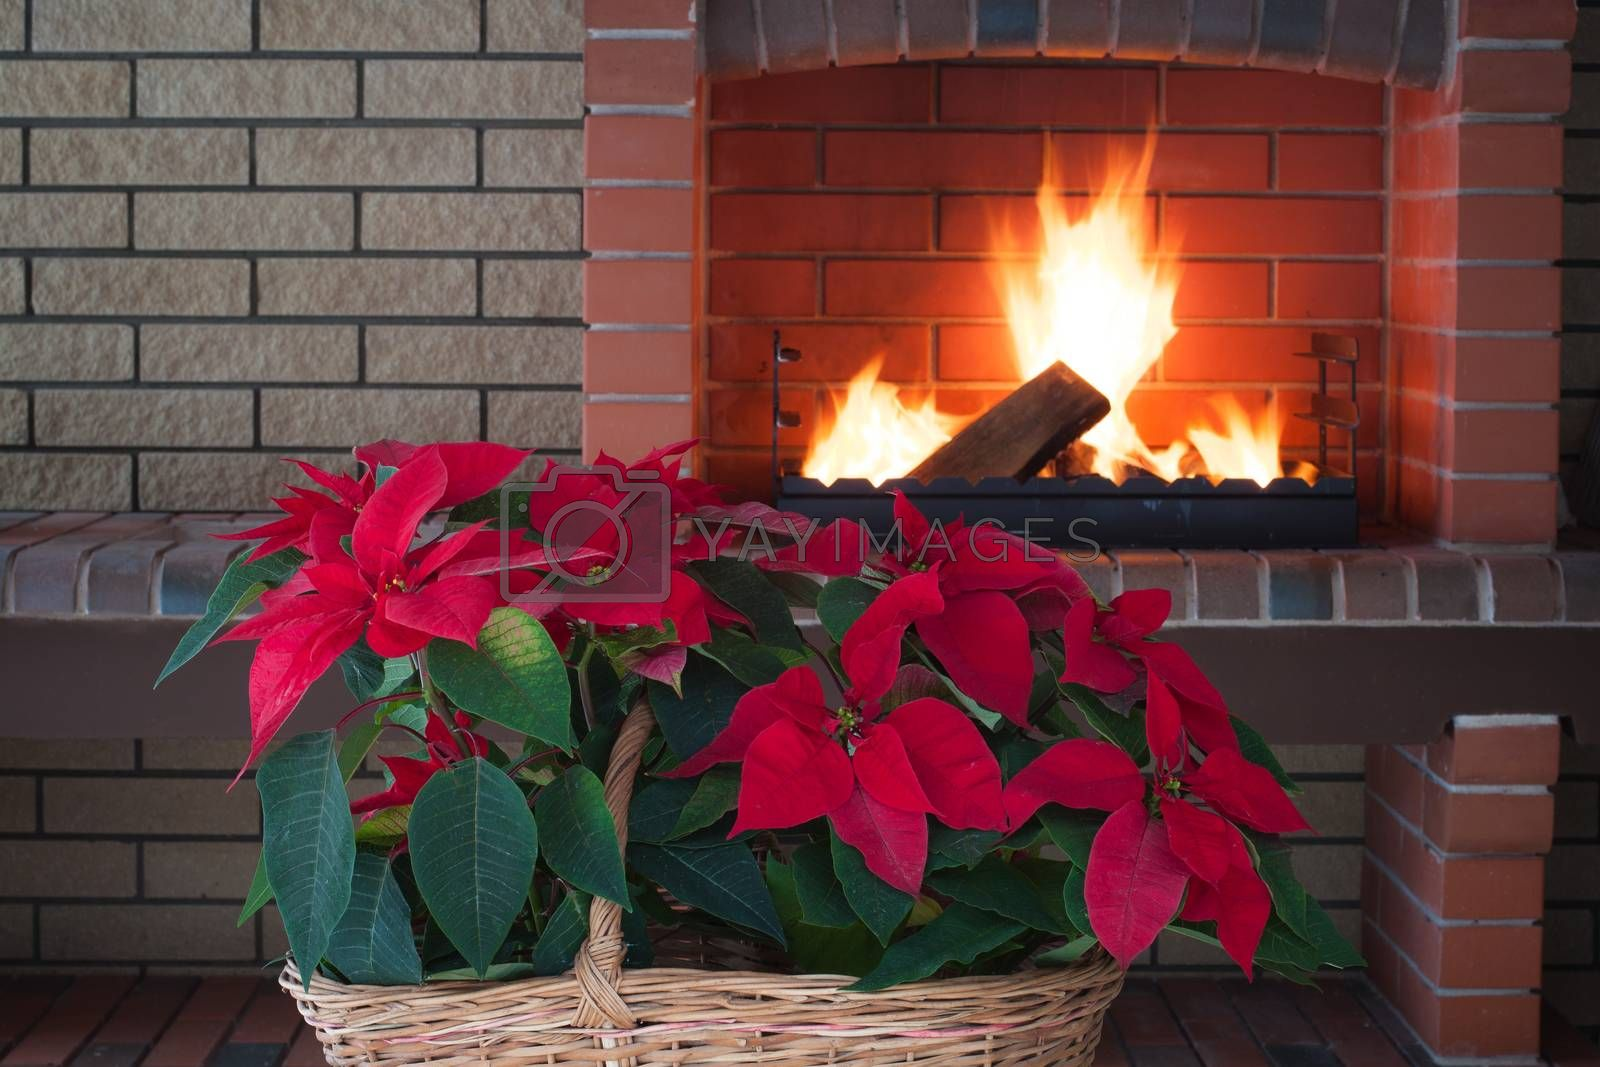 Poinsettia flowers isolated in vintage basket, fireplace, brick wall, romance. Copy space